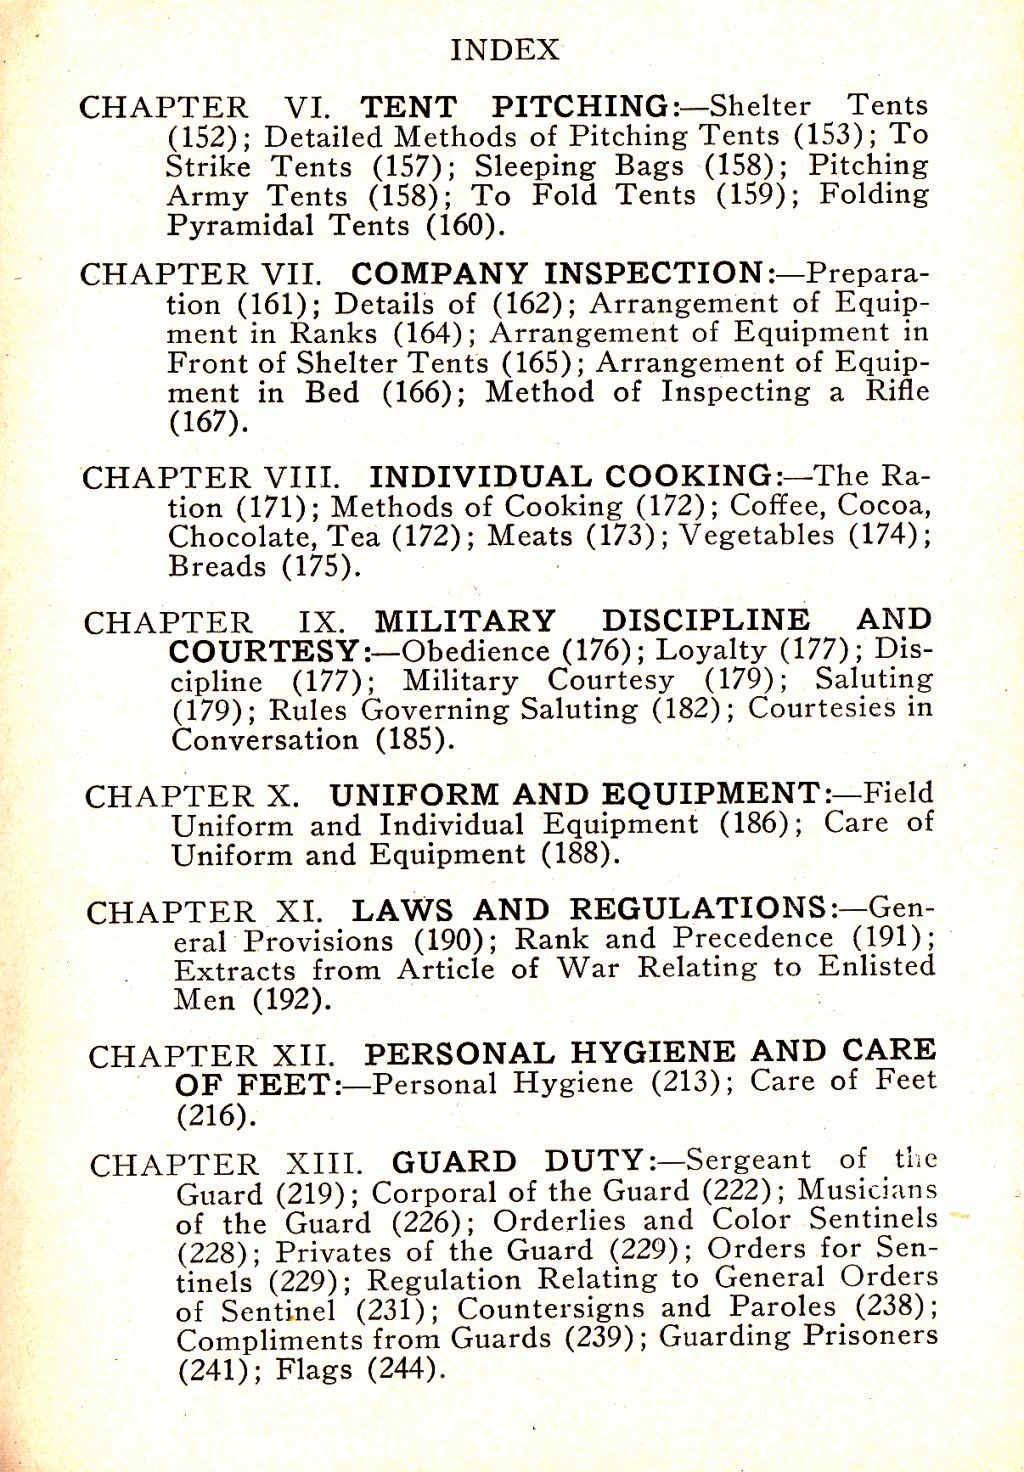 314th Infantry Regiment - Infantry Soldiers Handbook - Waldron - Page 247